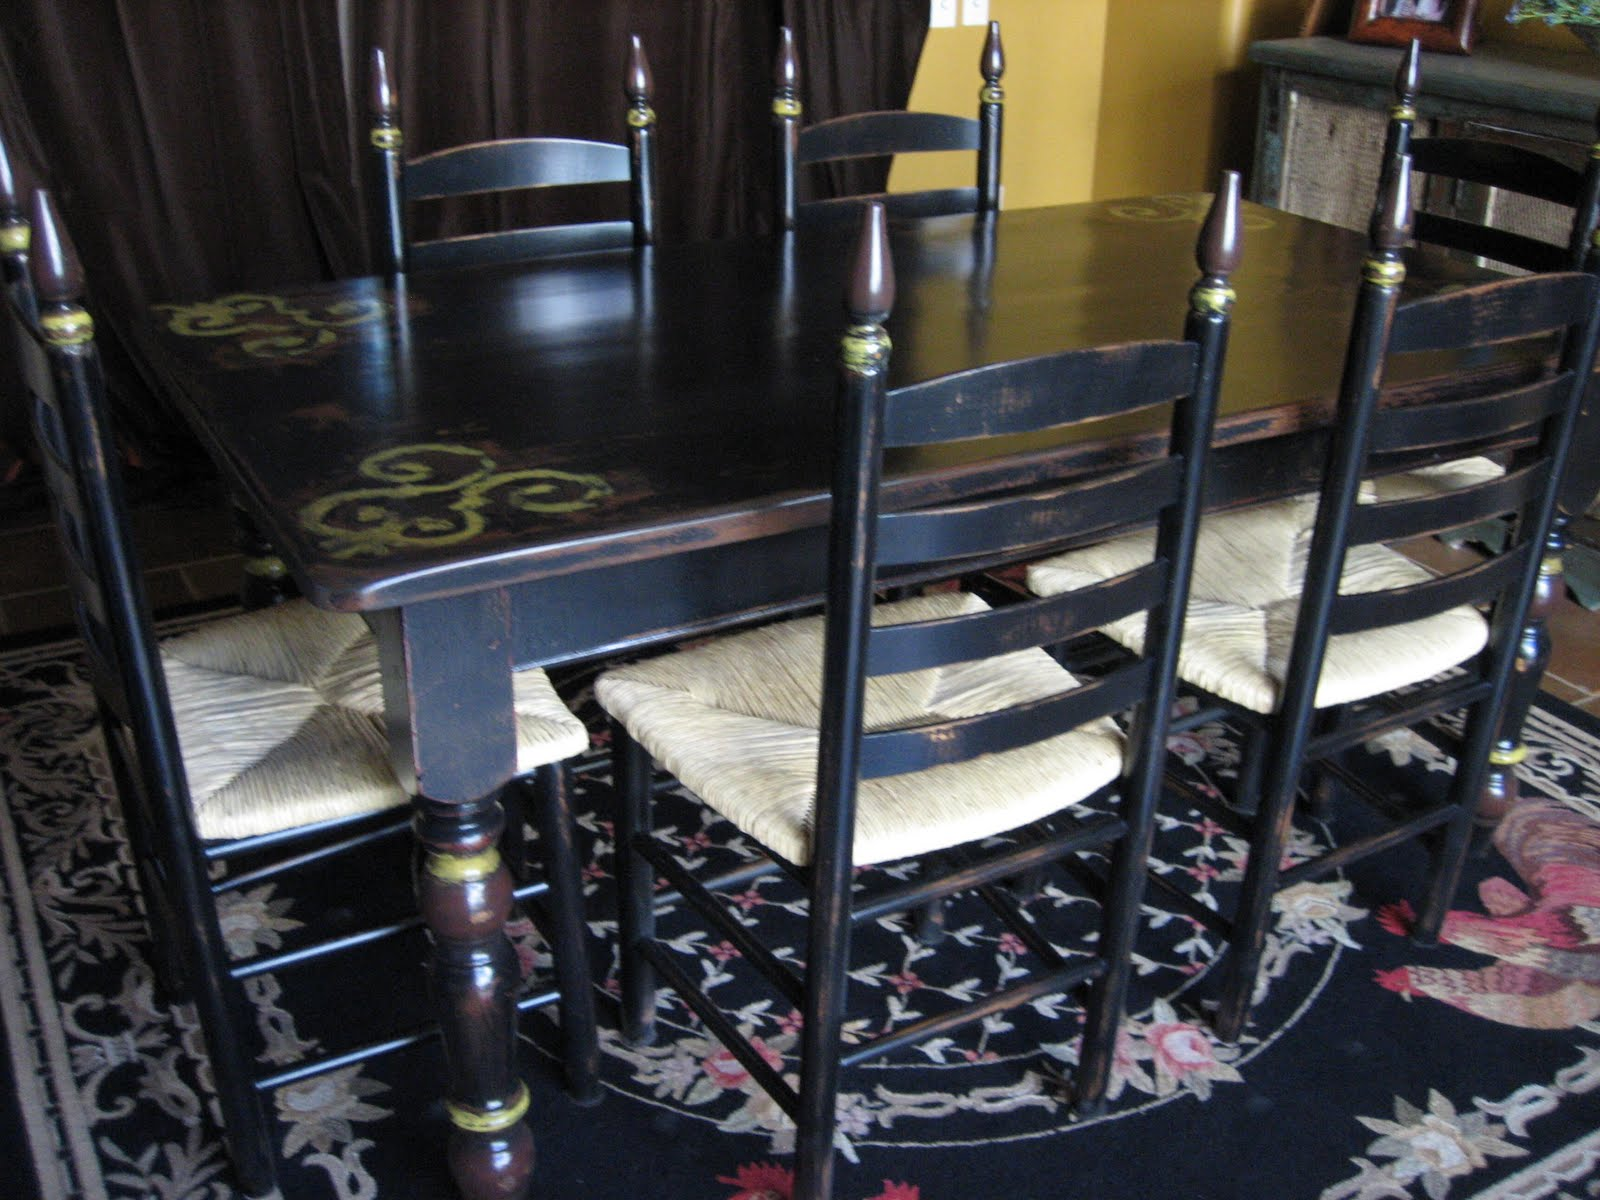 Remarkable Distressed Black Dining Table and Chairs 1600 x 1200 · 203 kB · jpeg